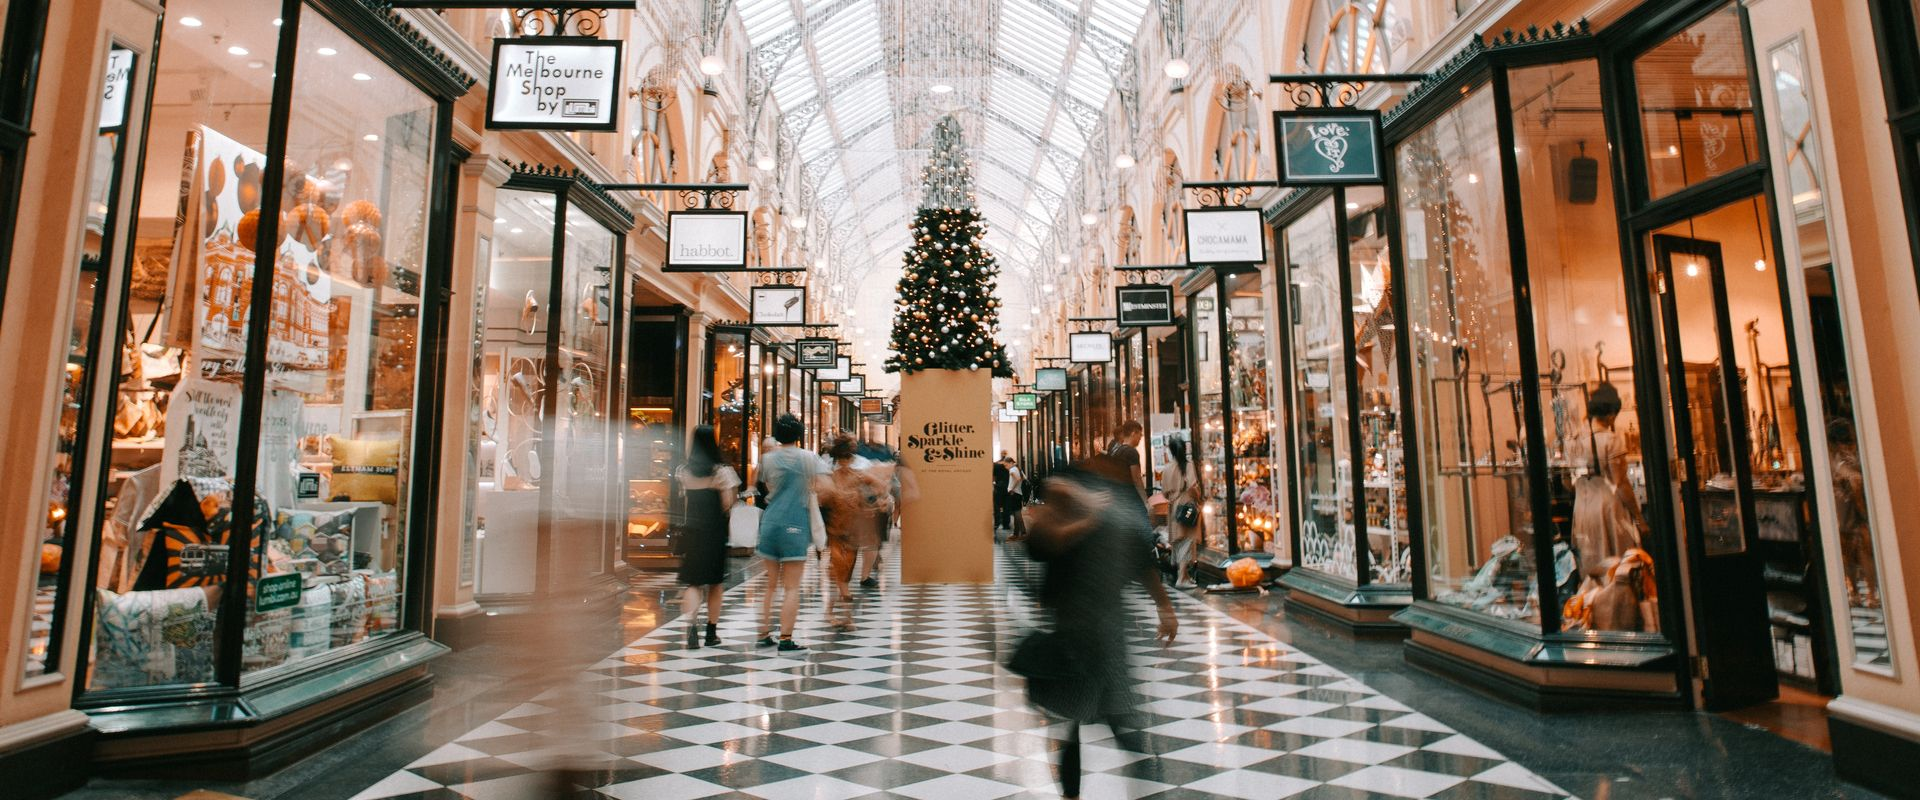 busy mall during Christmas